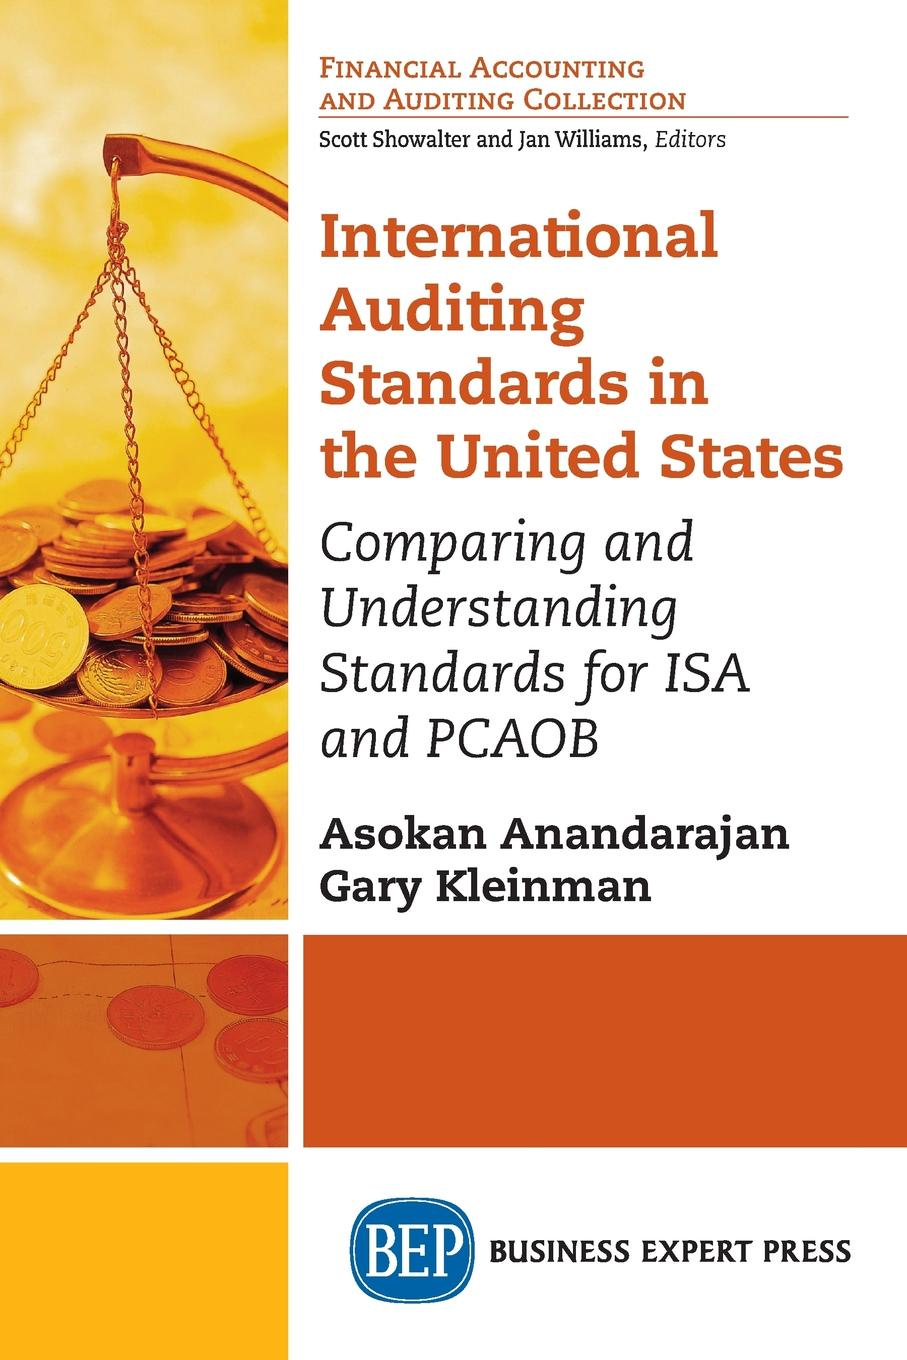 Asokan Anandarajan, Gary Kleinman International Auditing Standards in the United States. Comparing and Understanding Standards for ISA and PCAOB arif ahmed understanding and conducting information systems auditing